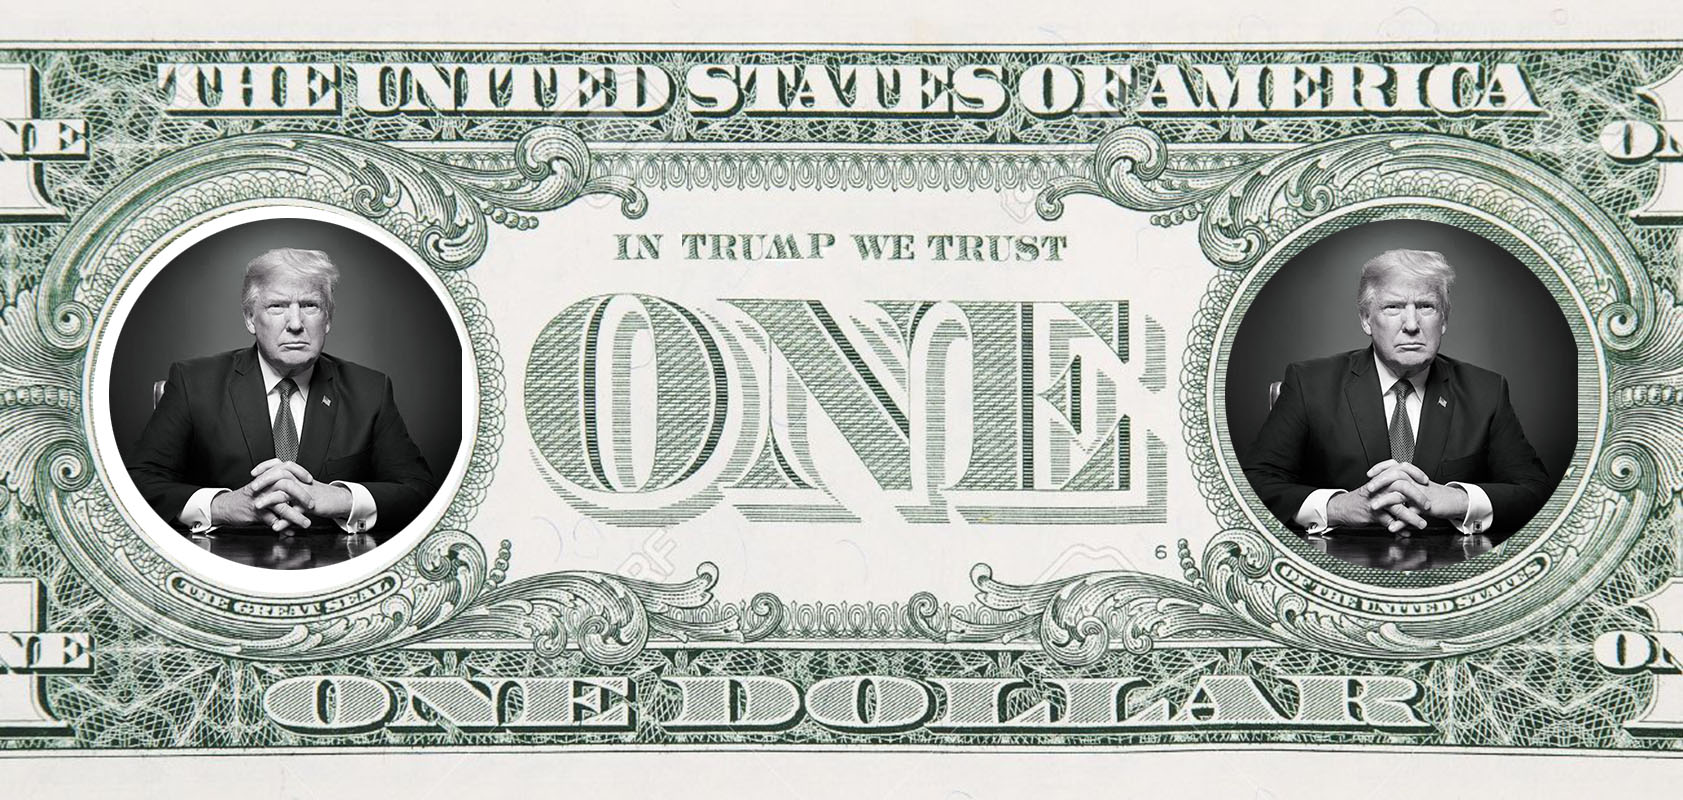 2786027-one-dollar-bill-back-detail.jpg